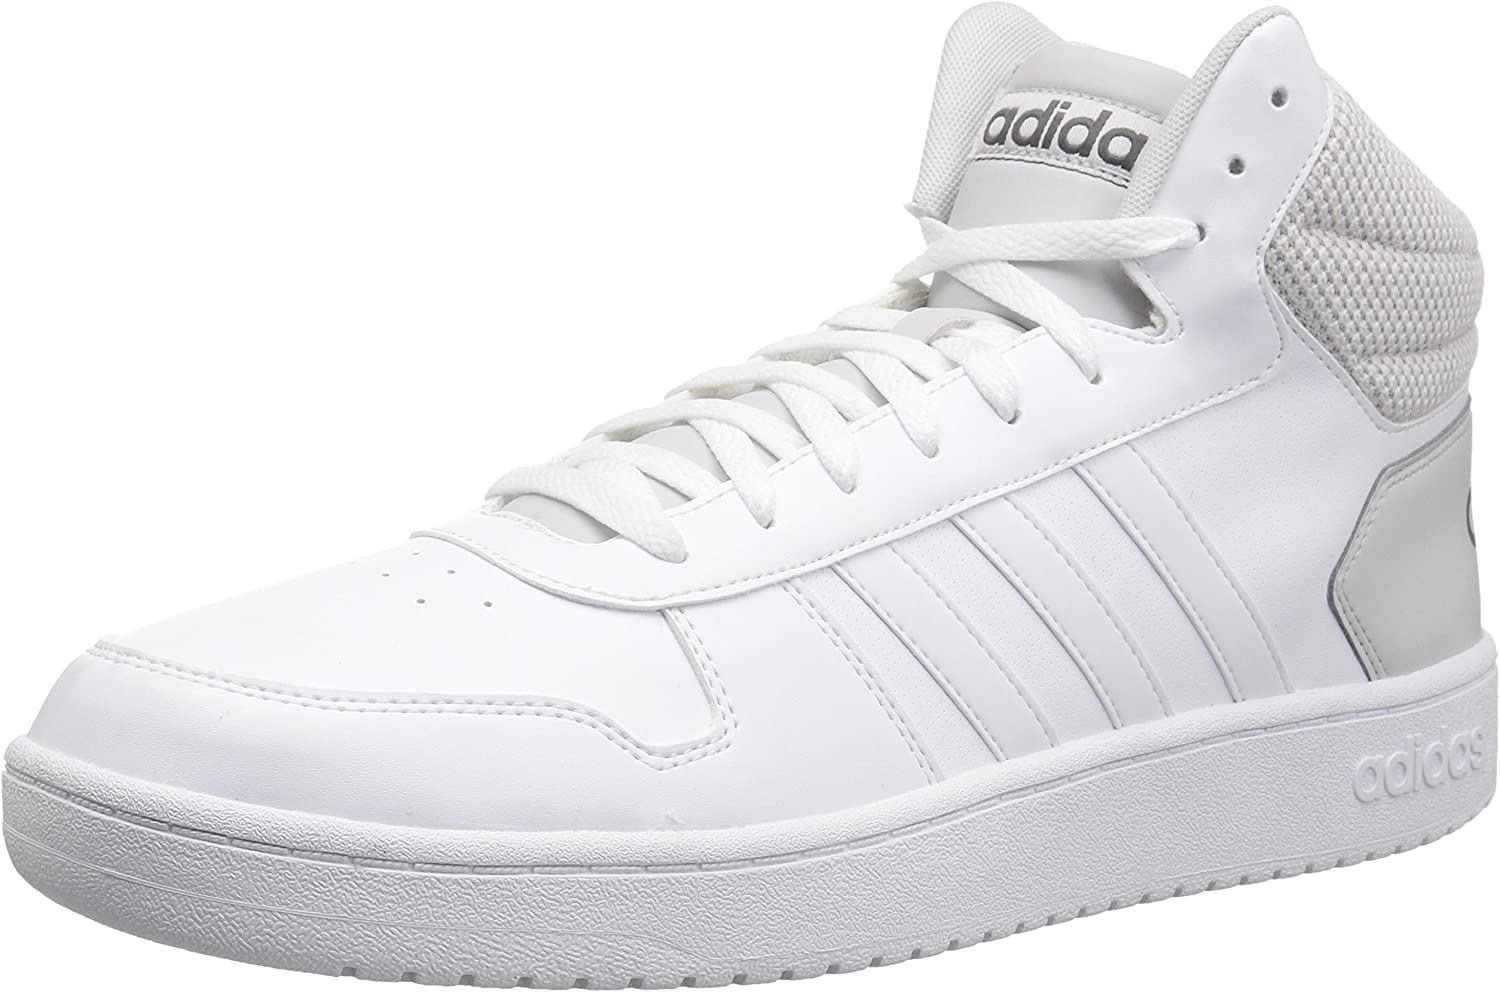 Details about Adidas Hoops 2.0 Mid Cut Shoes Men Mens High